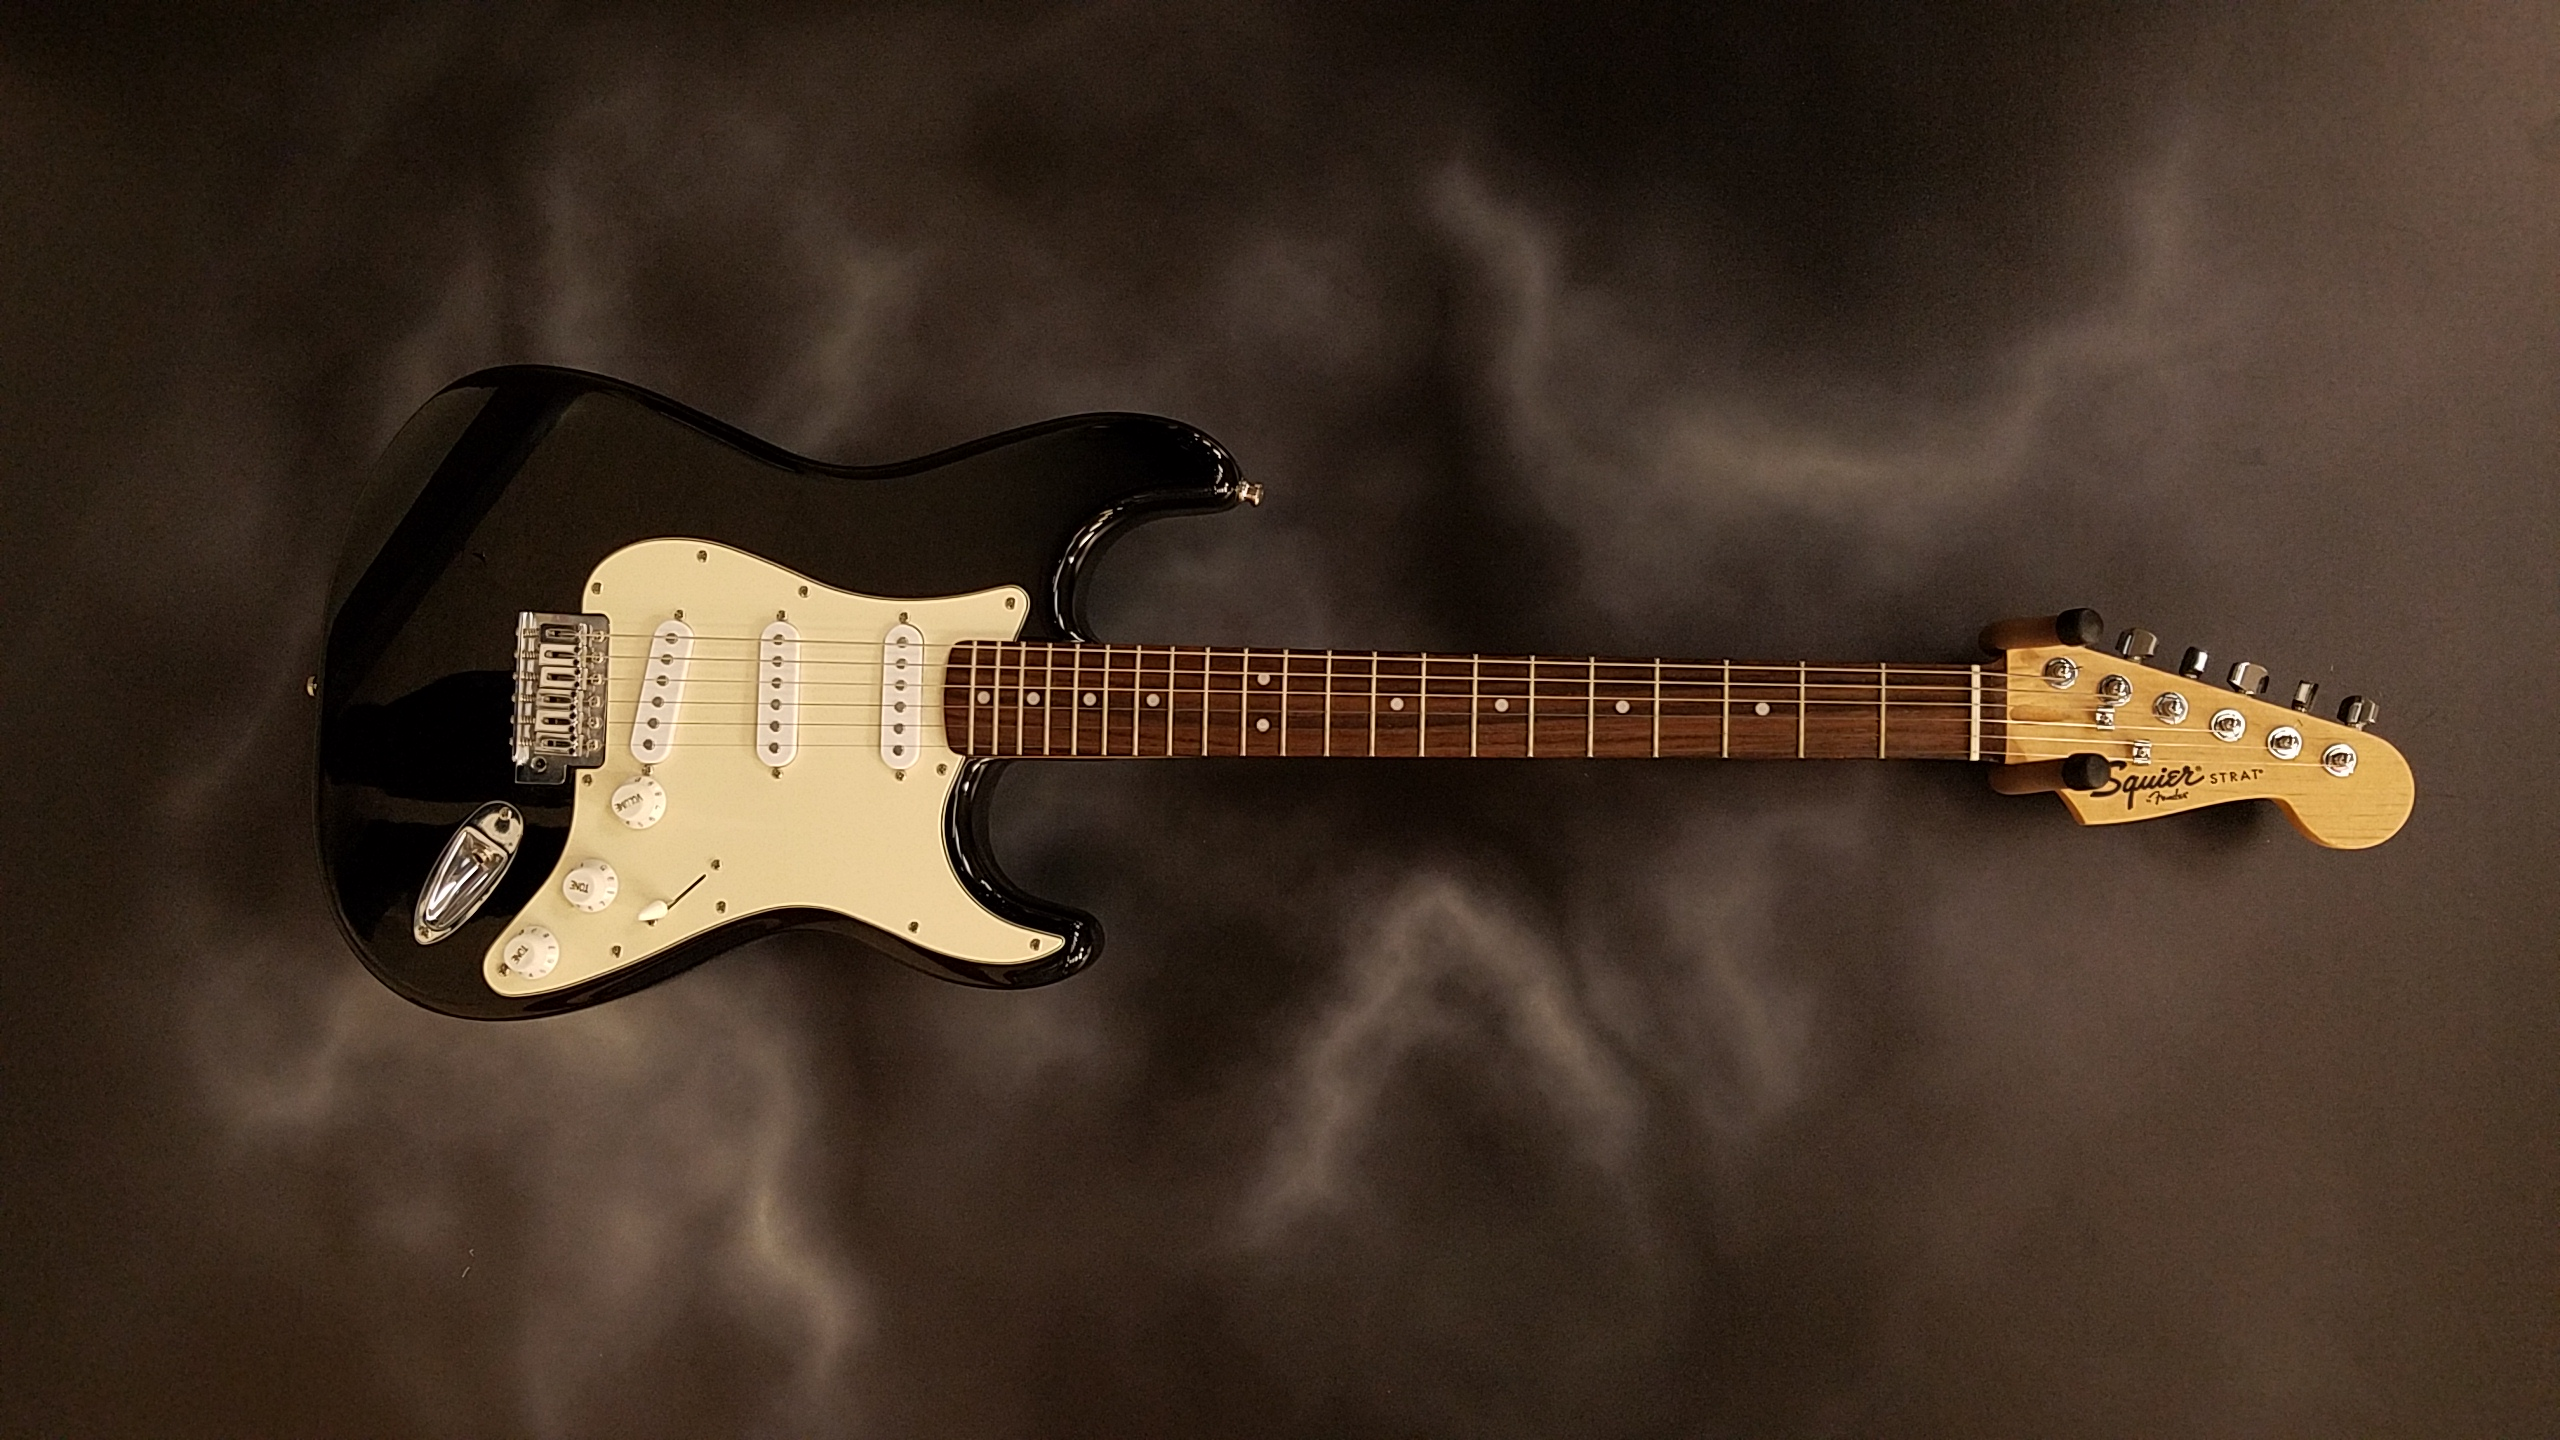 Squier - Stratocaster